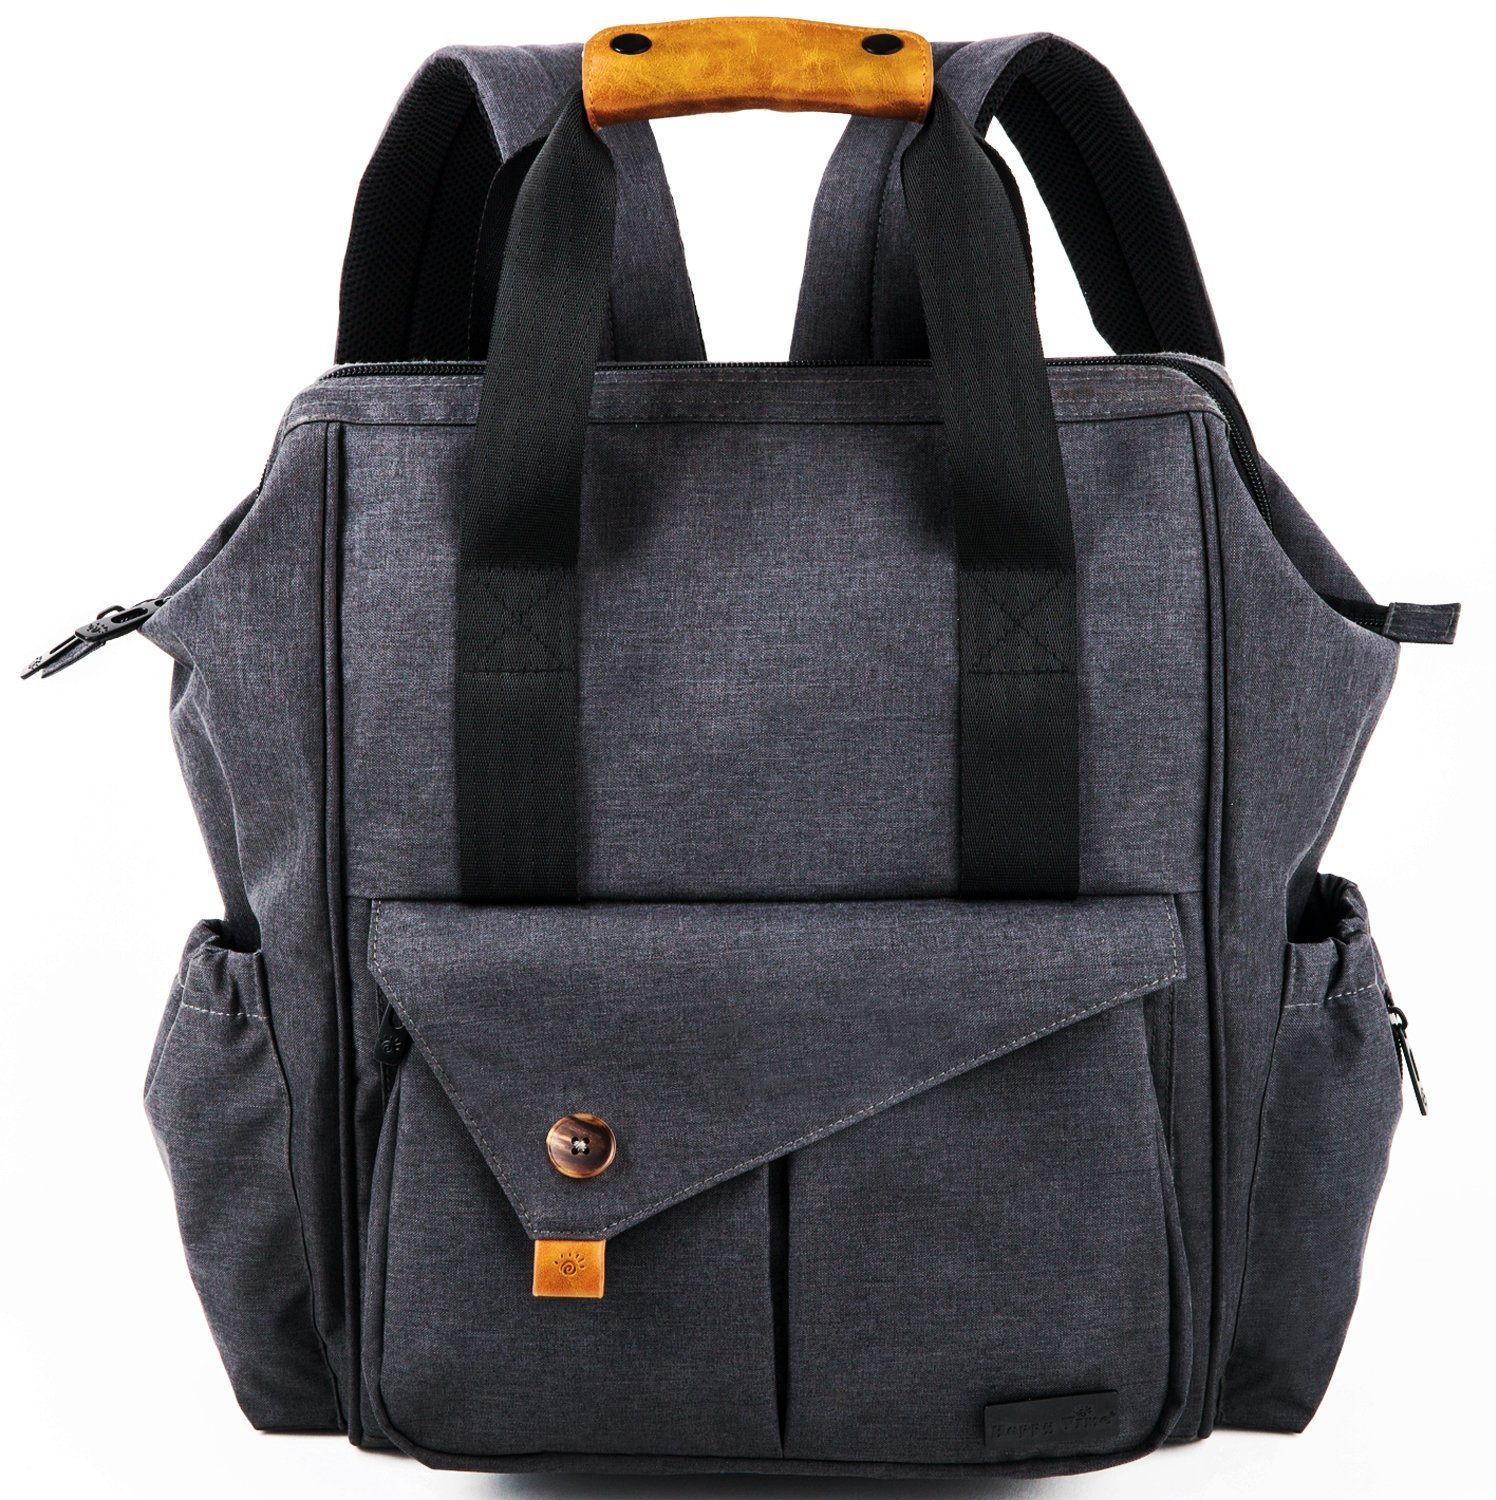 HapTim Diaper Bag